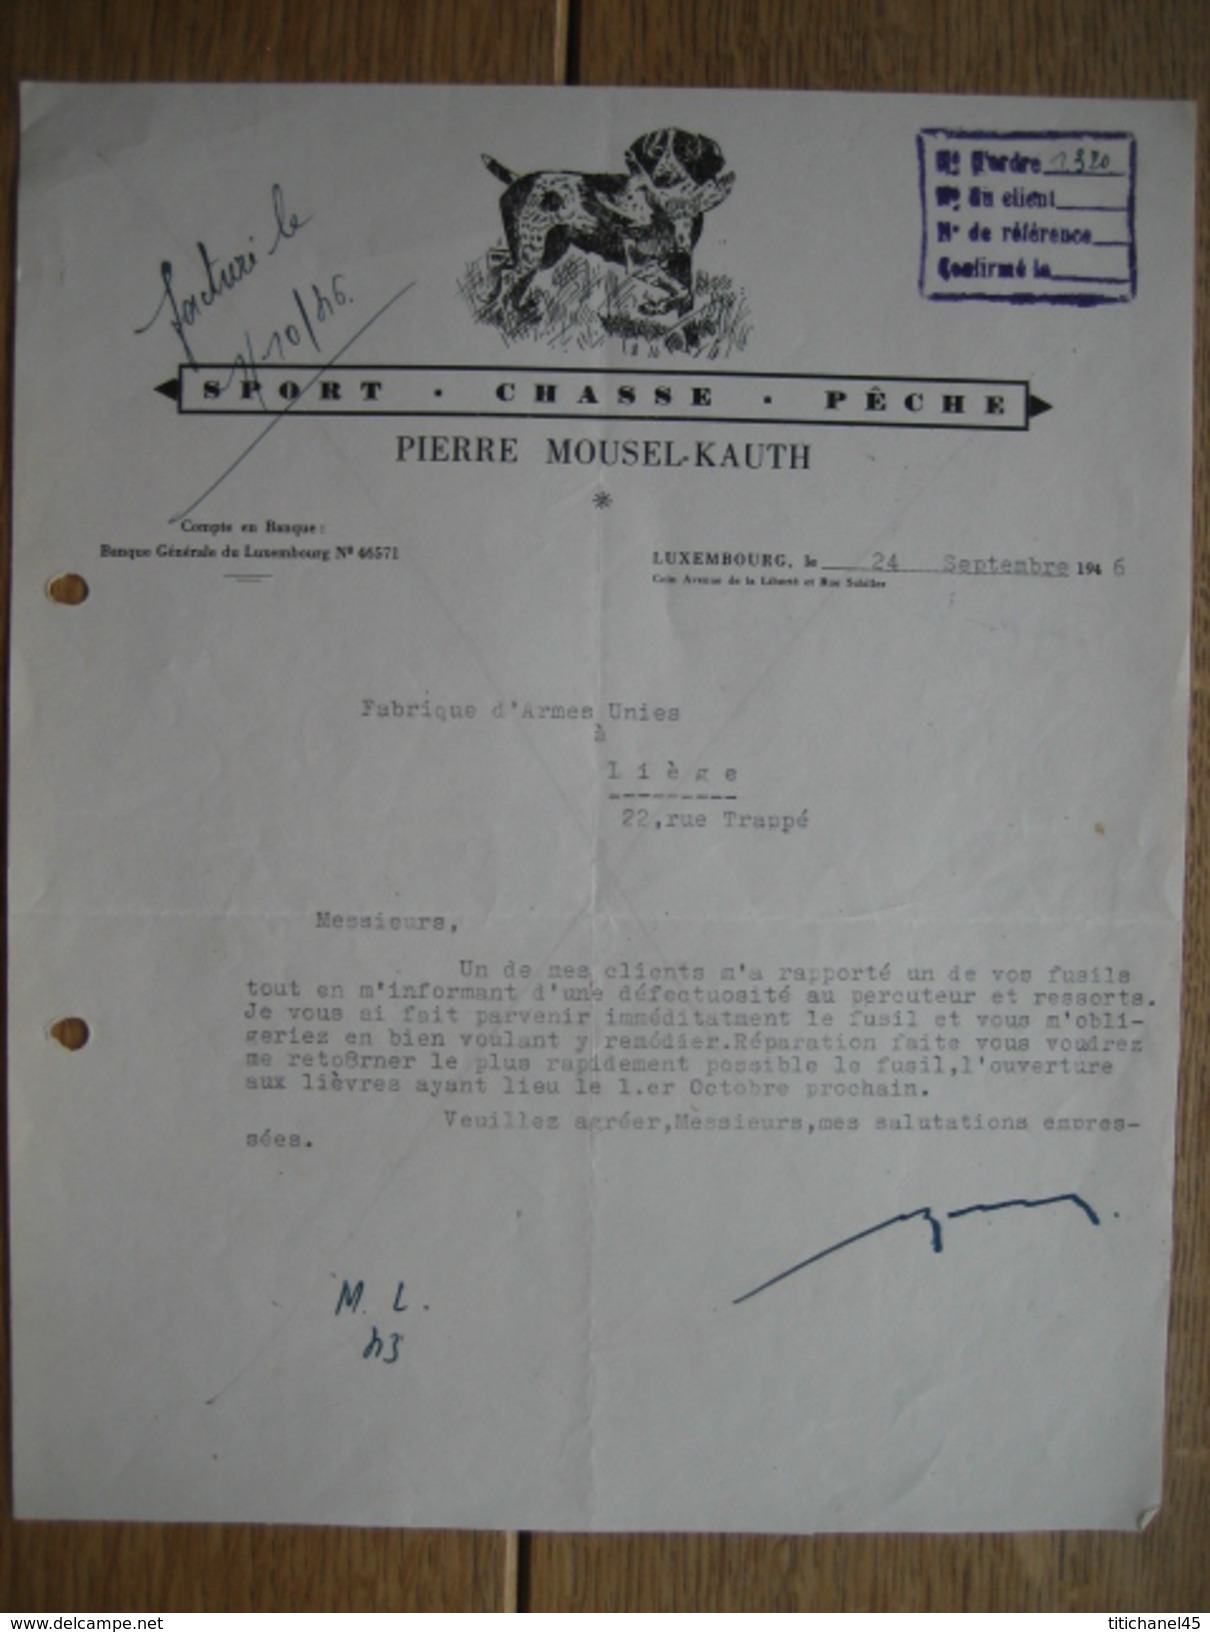 LUXEMBOURG 1946 - PIERRE MOUSEL-KAUTH - Sport - Chasse - Pêche - Luxembourg